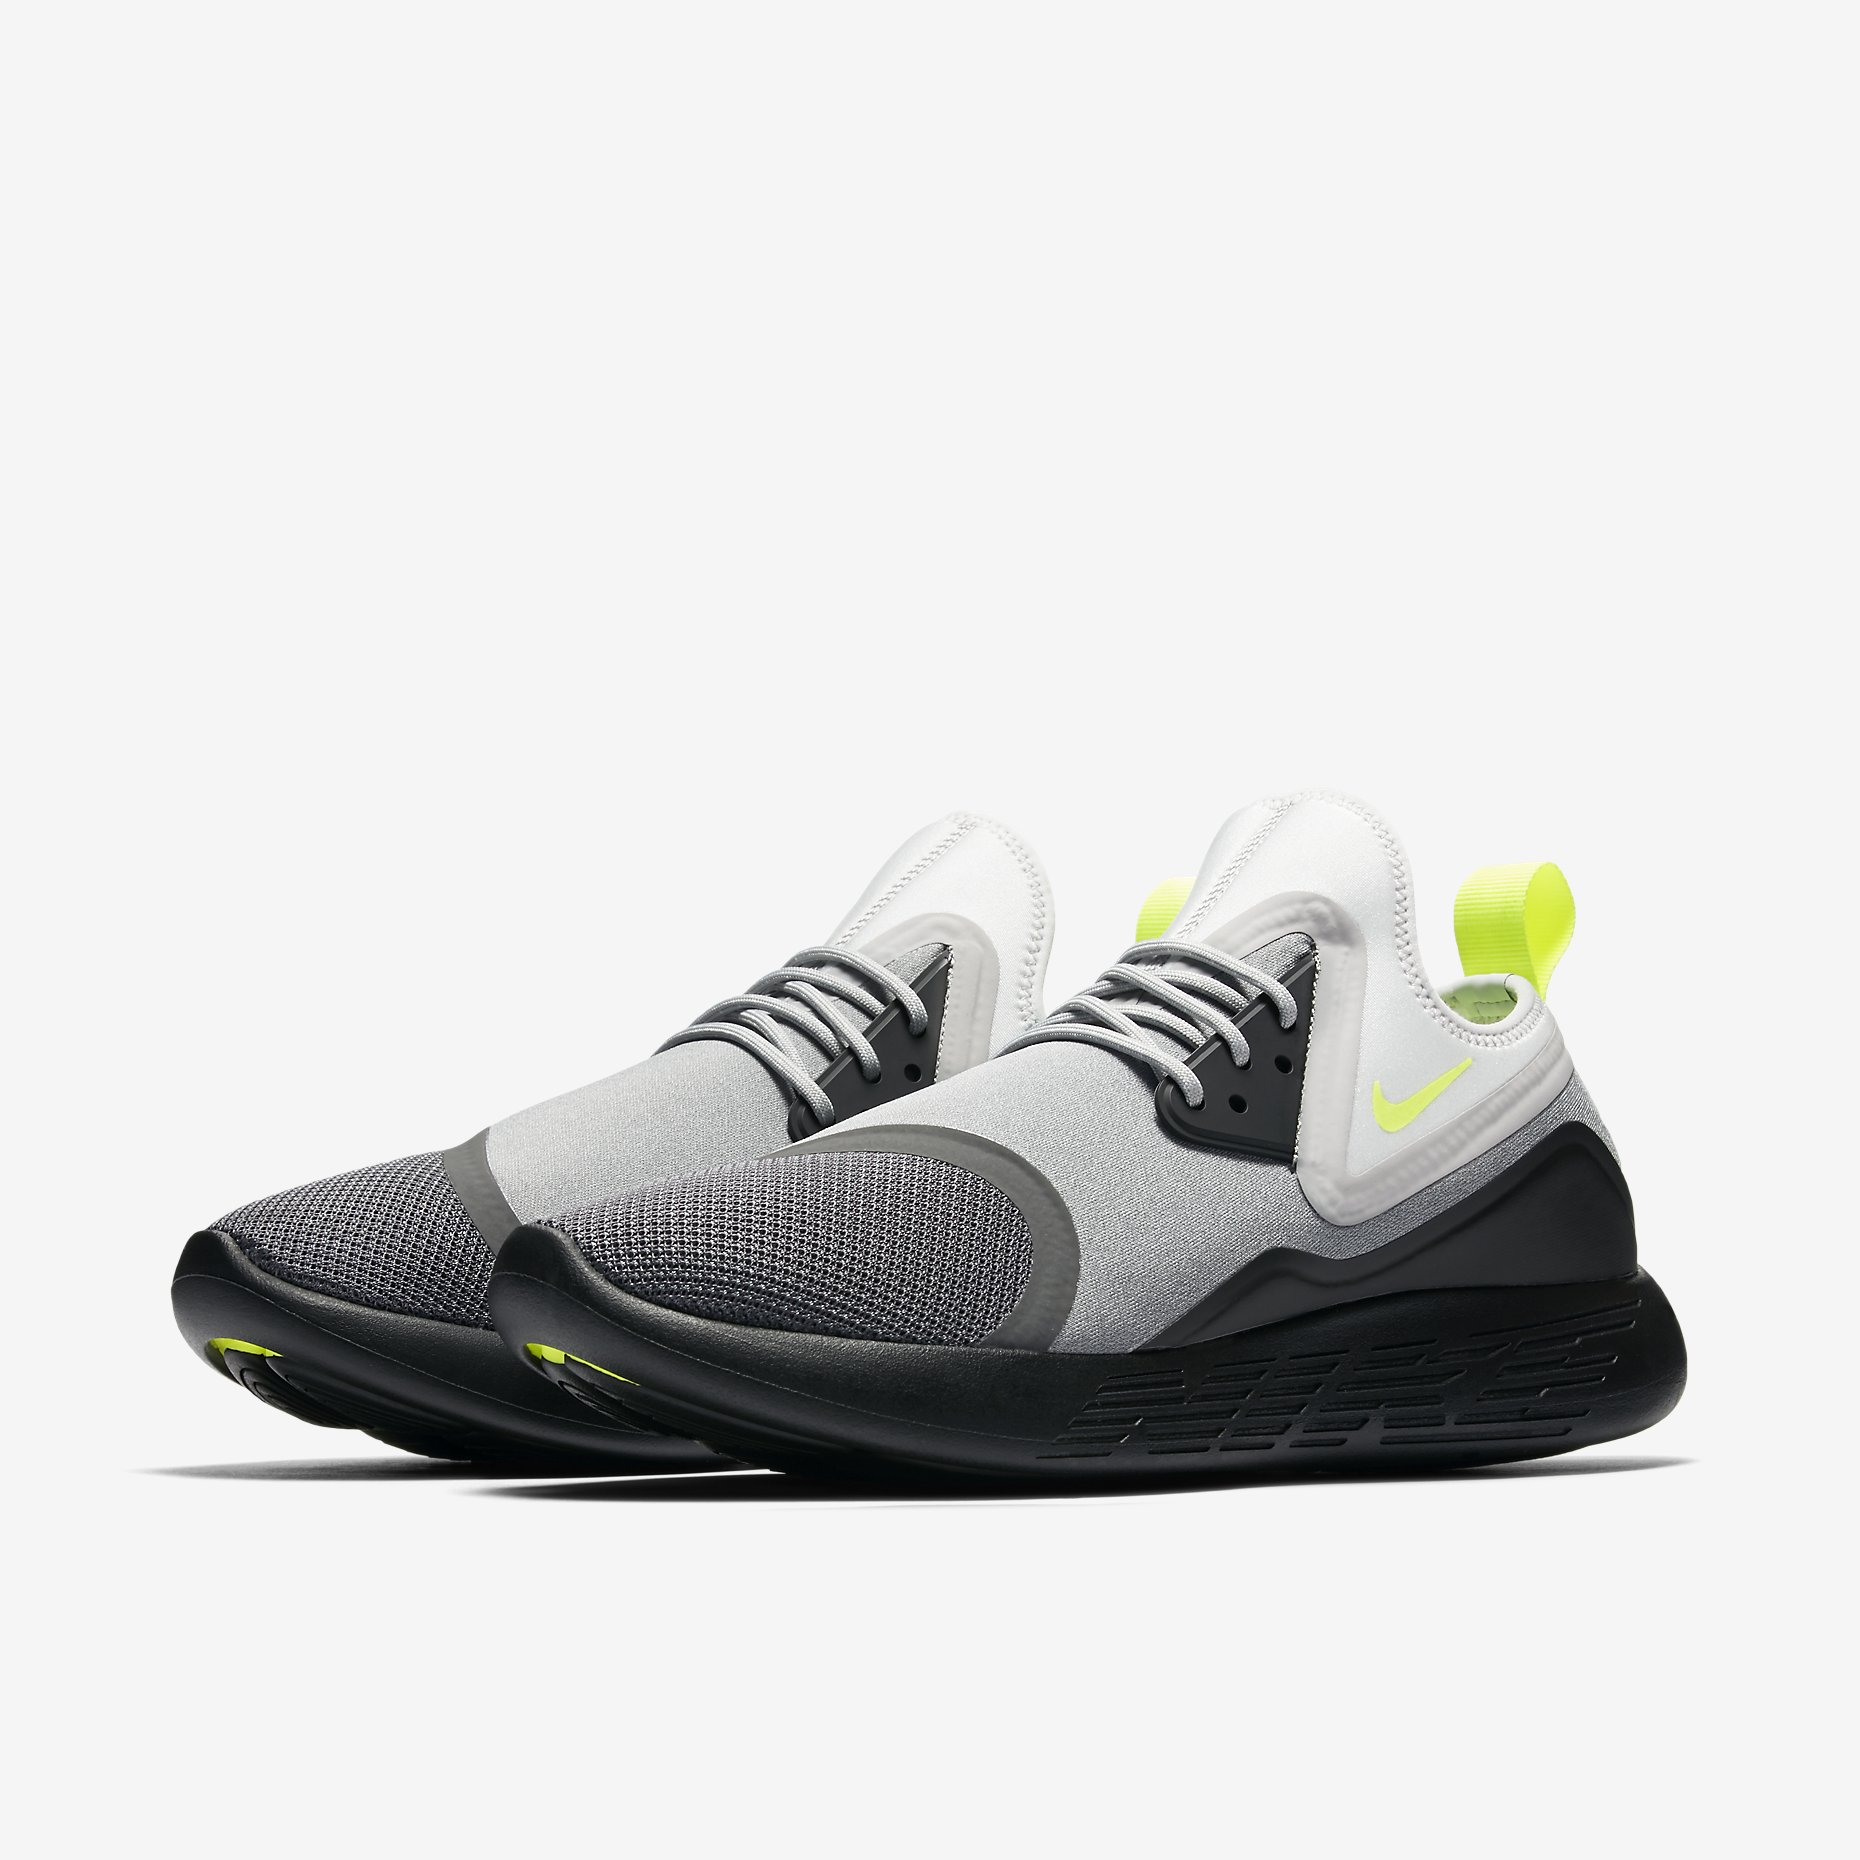 Nike LunarCharge Essential BN Neon 933811 070 2